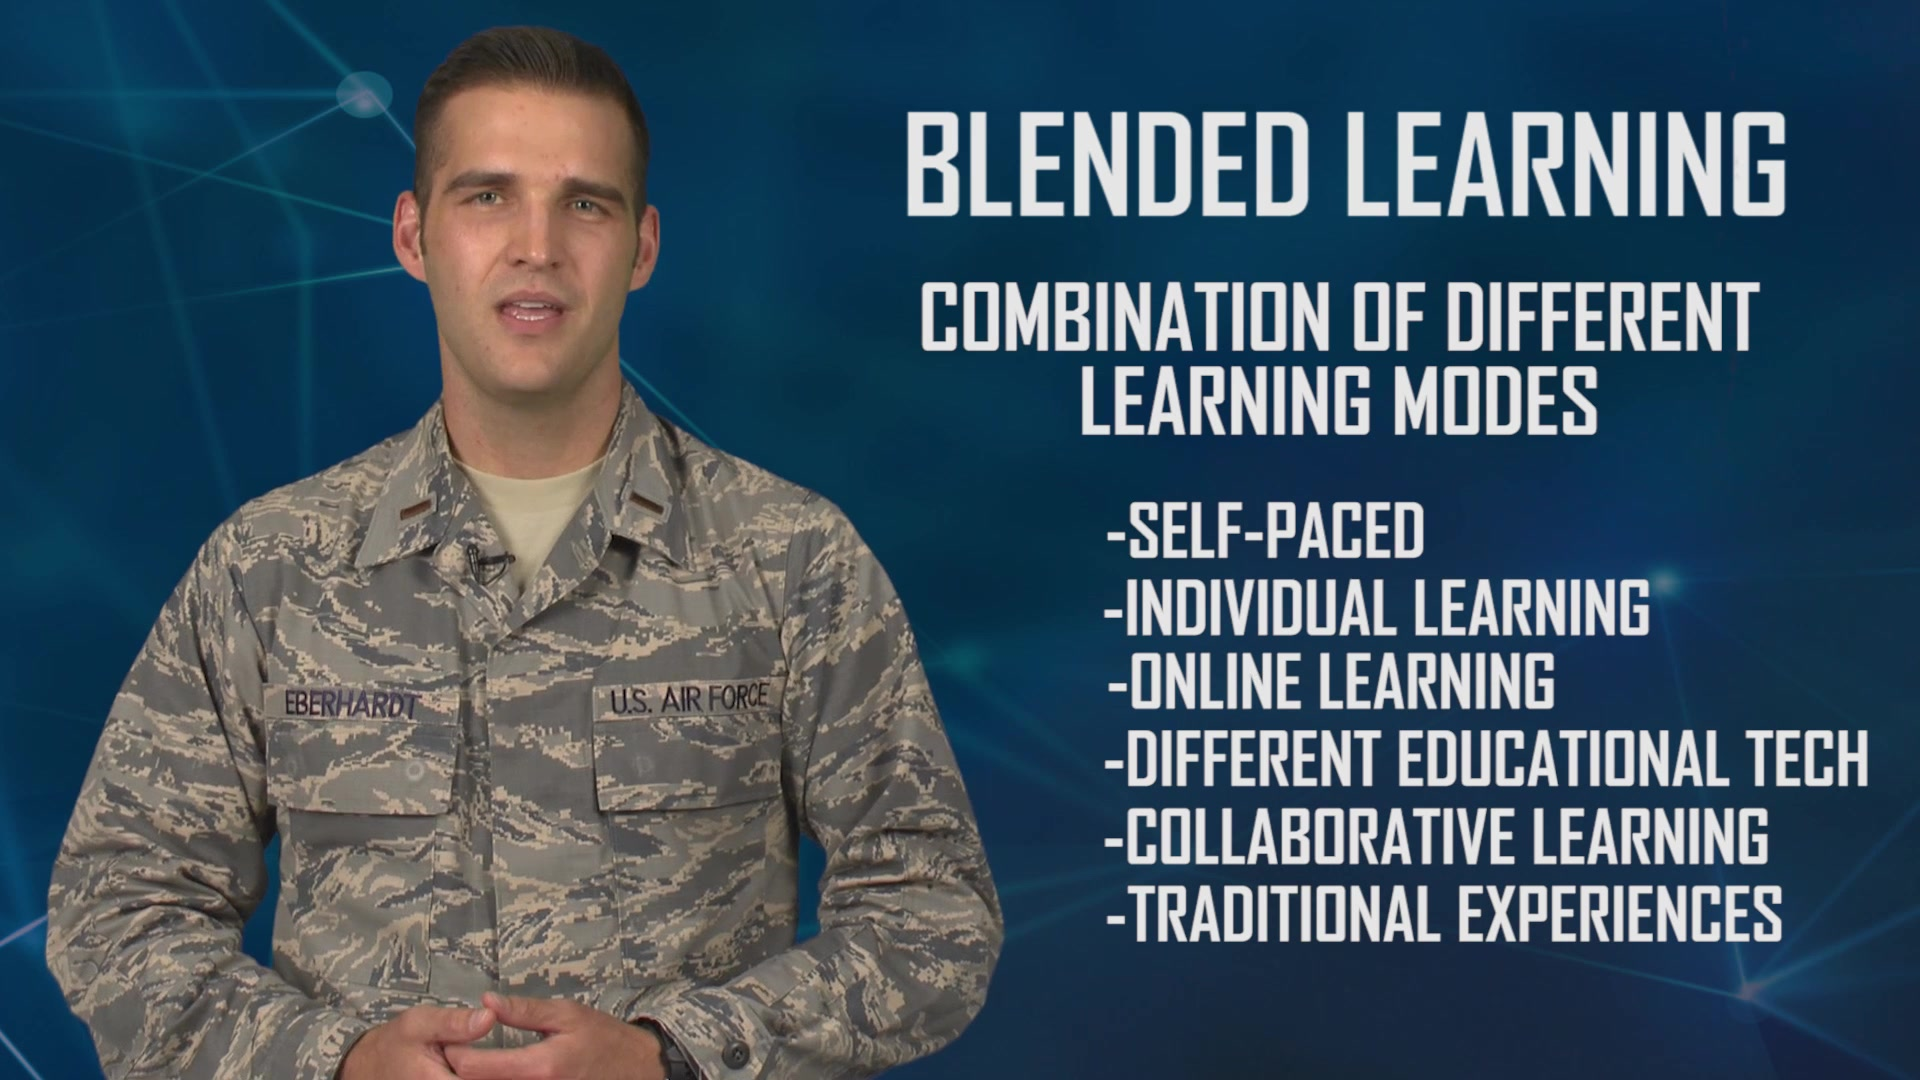 Air Education and Training Command is reimagining the way Airmen learn through the Continuum of Learning, a paradigm shift in education, training and the capitalization of experiences.   This video explains blended learning.